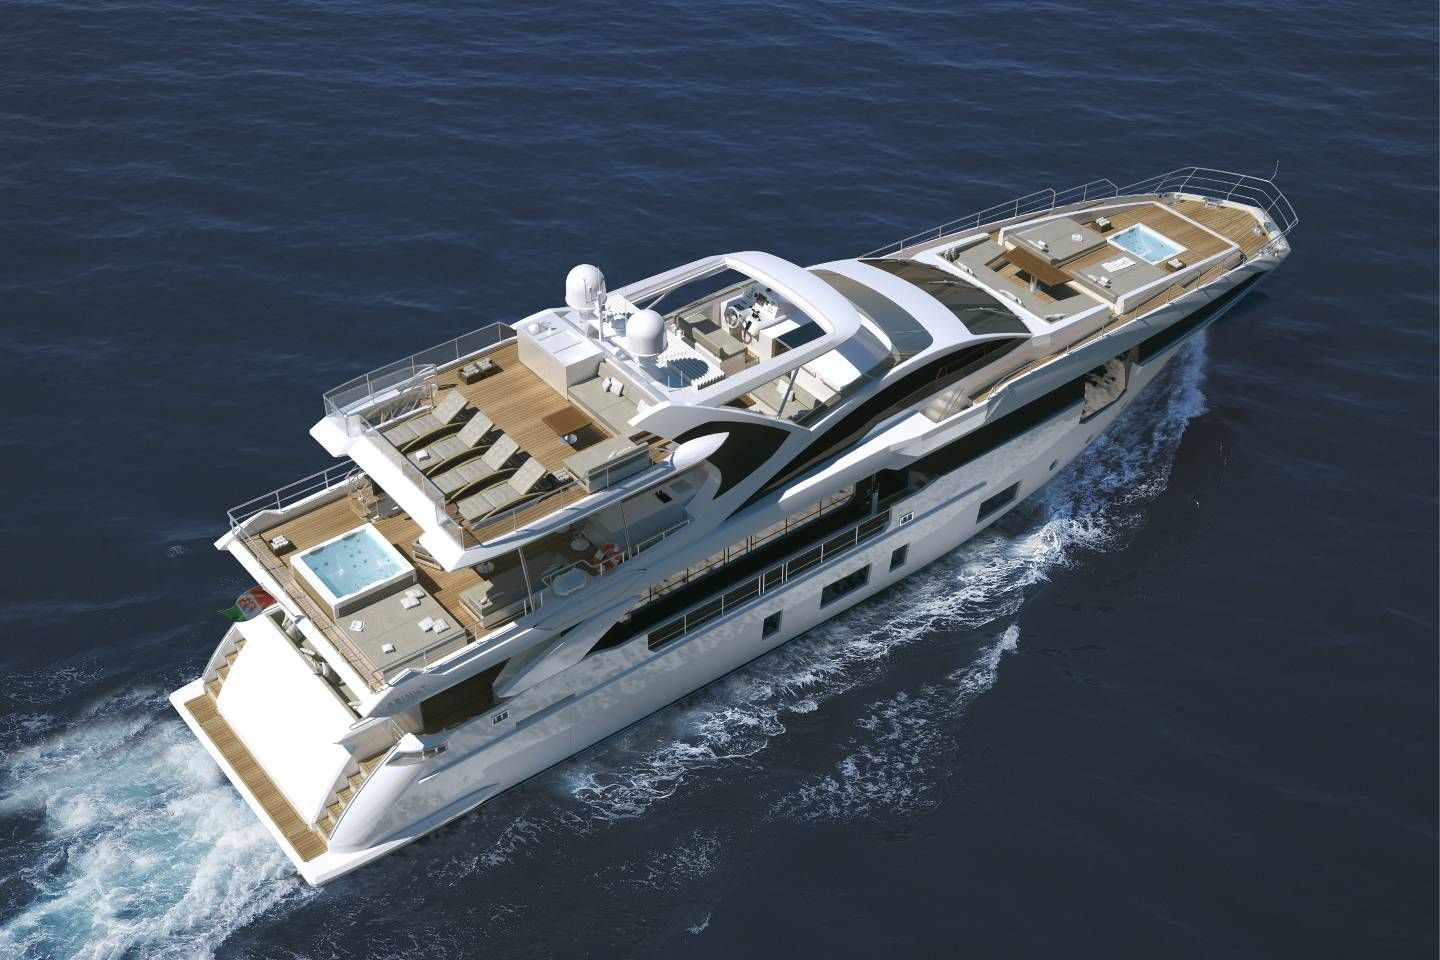 Ready Azimut Grande35m The New Flagship Carbon Fiber And